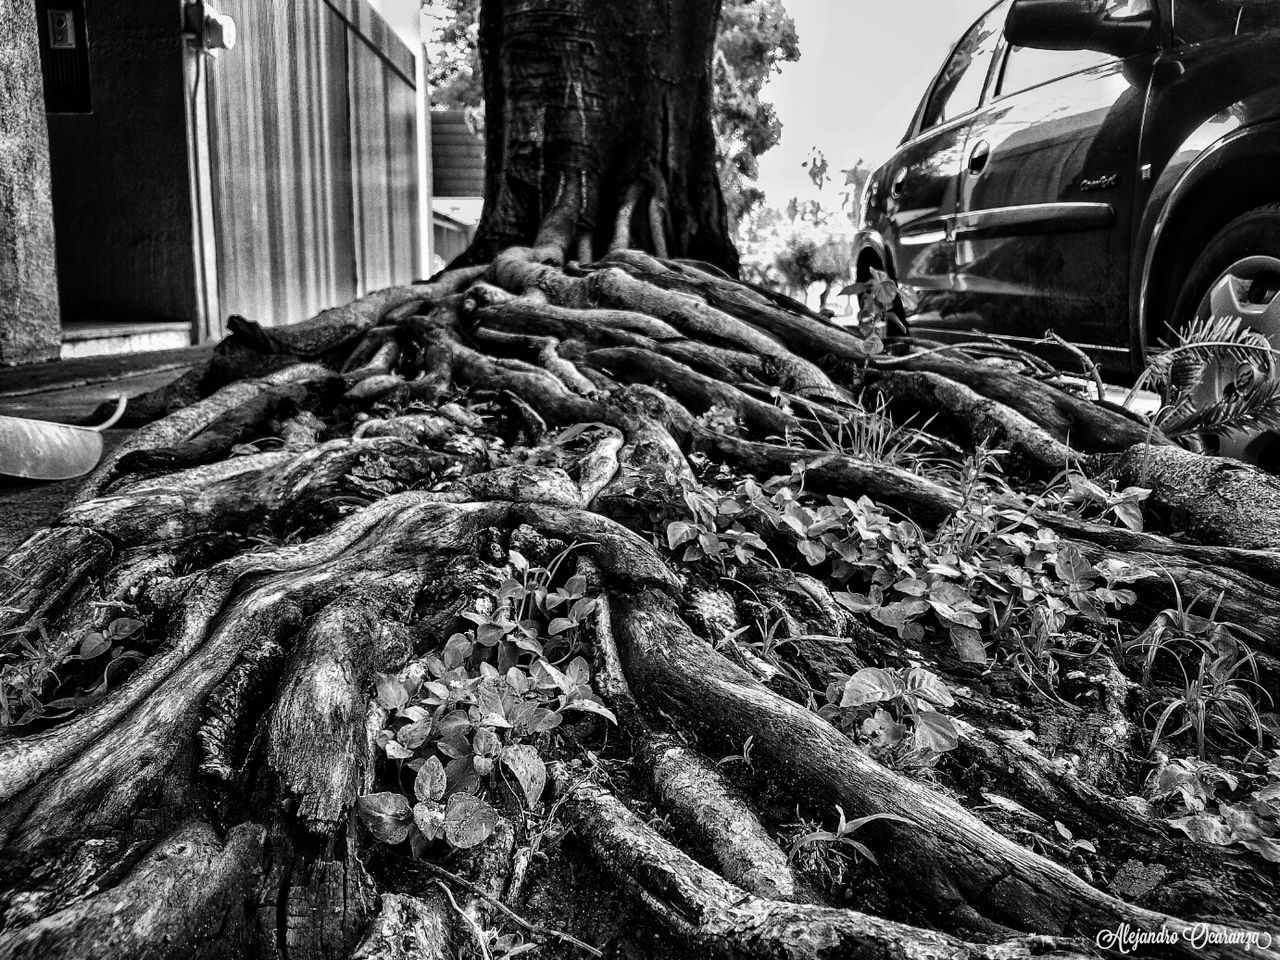 Raíces que Perduran City Nature Photo Guadalajara Mexico Photography Guadalajara Jalisco Photos Day Photographie  No People First Eyeem Photo Plant Tree Black And White Photography Blake_and_white Photographer Blsckandwhite B&w Blackandwhitephotography Black & White